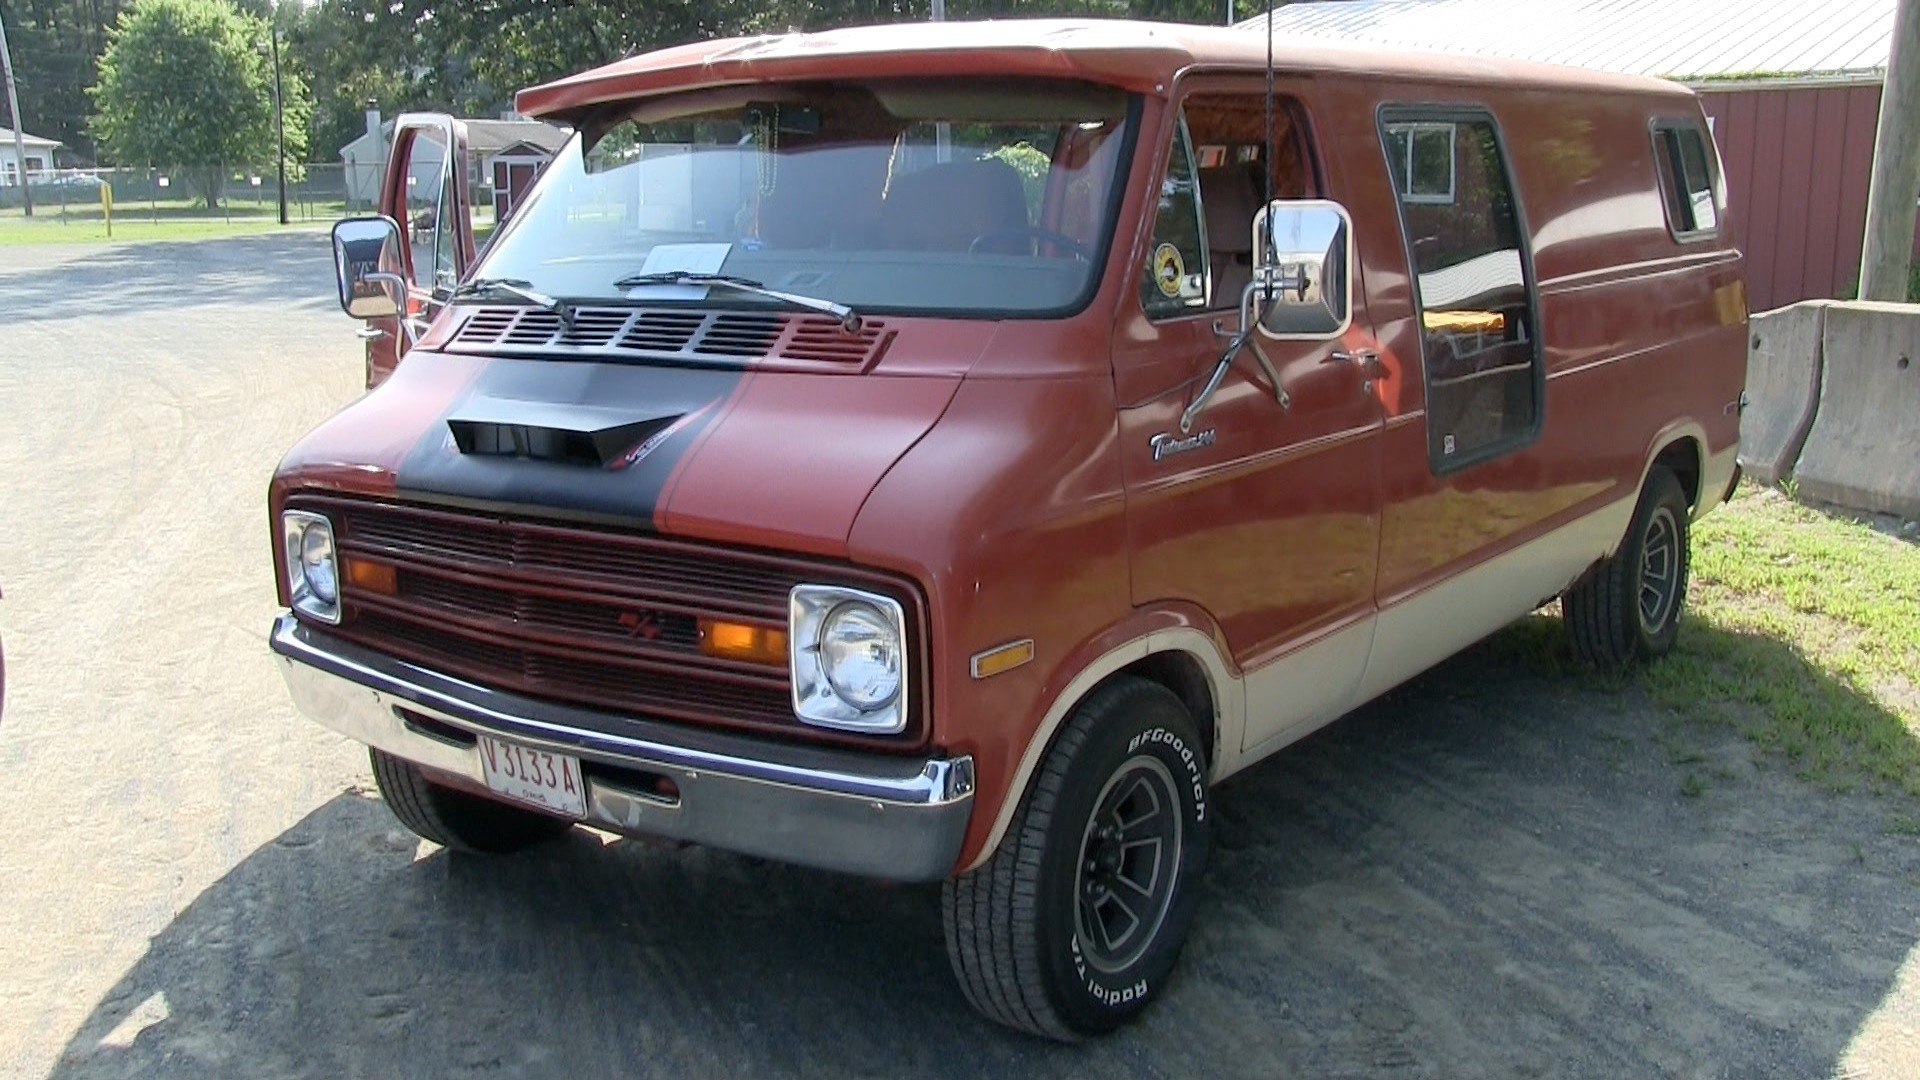 Mike Diacontonas' 1977 Dodge Van